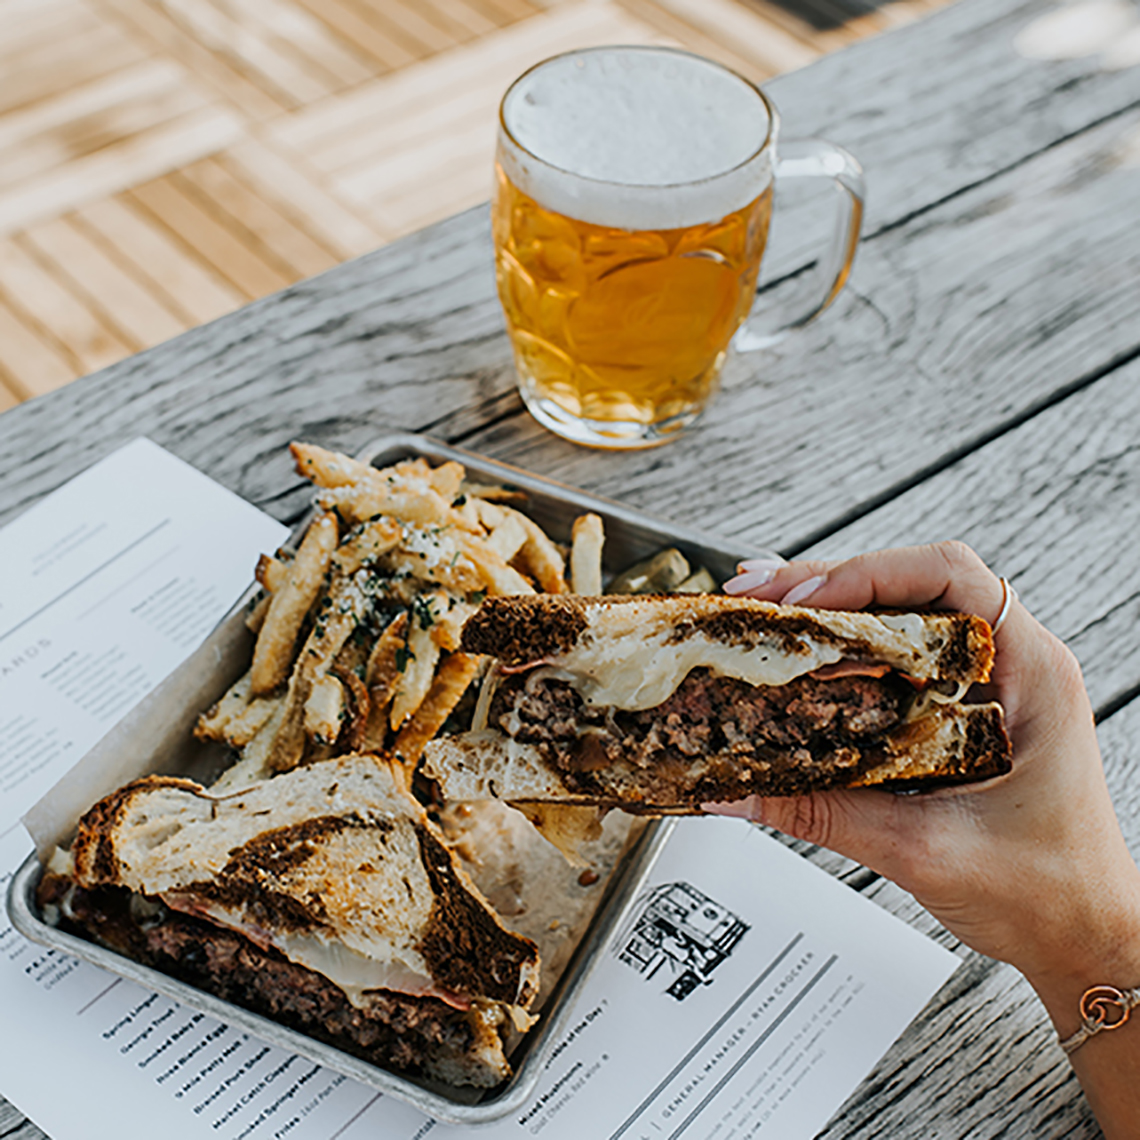 close up of a patty melt sandwich with french fries and a beer on a table